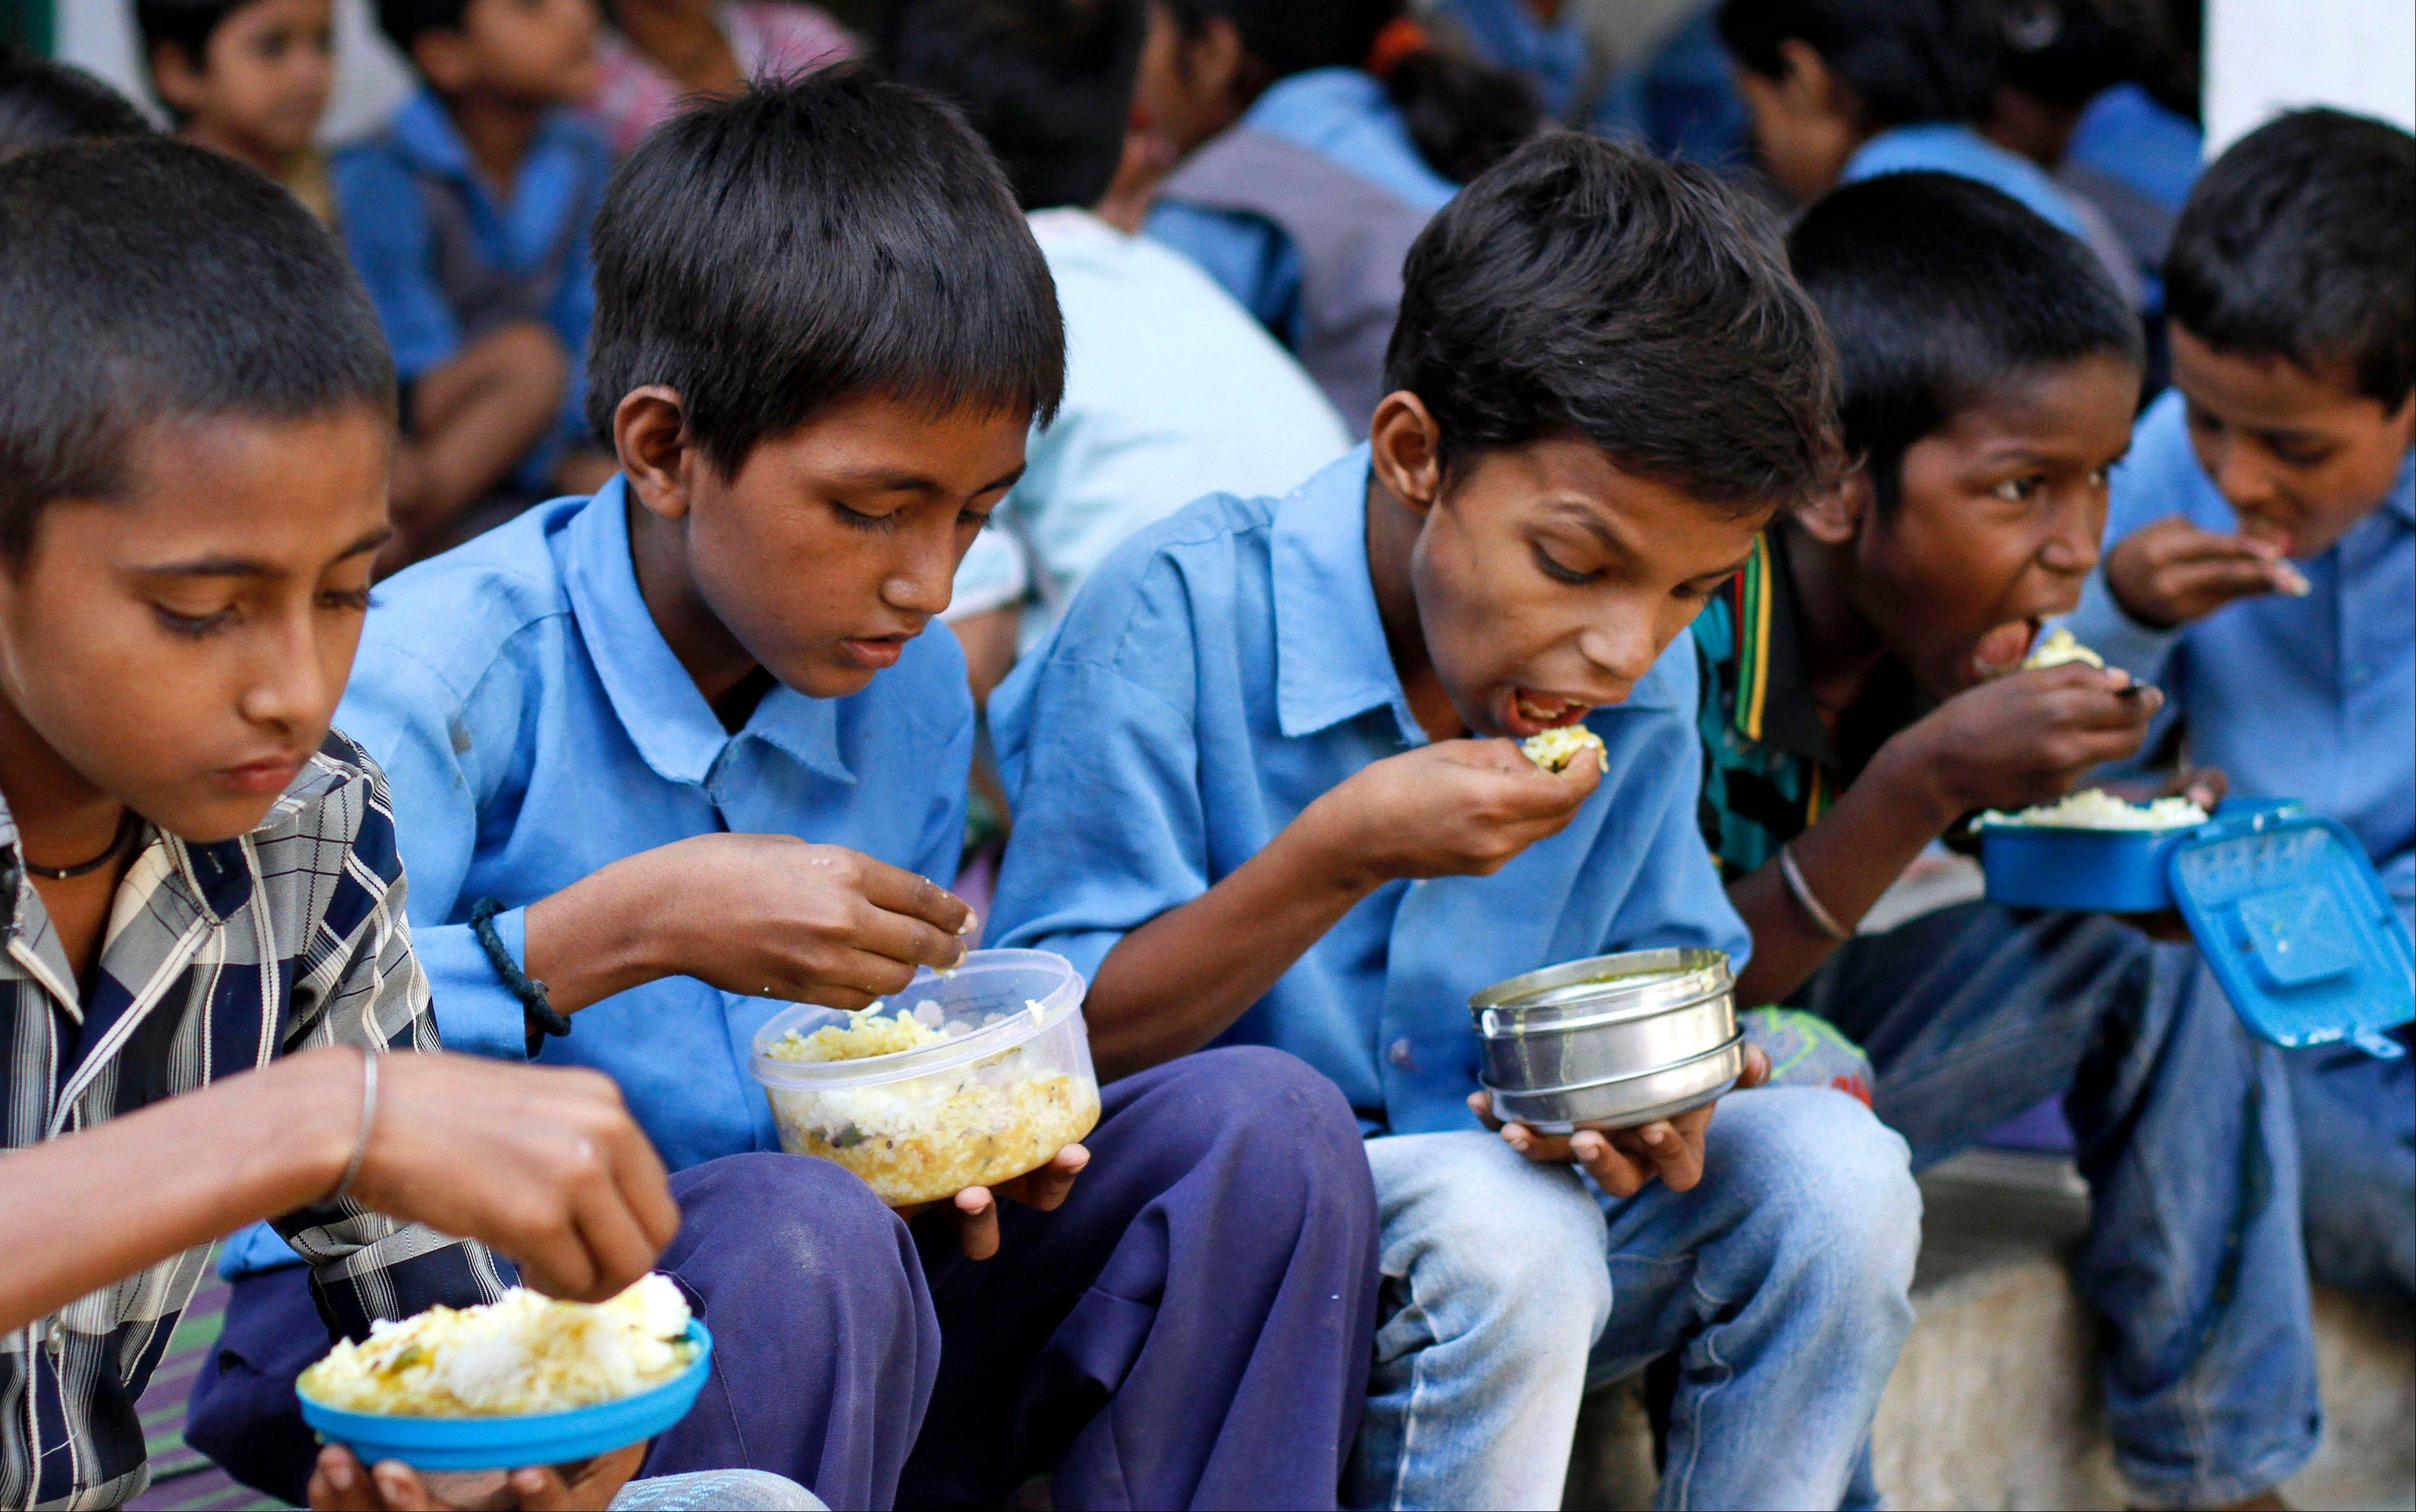 Indian schoolchildren eat a free mid-day meal at a government school in Allahabad, India.